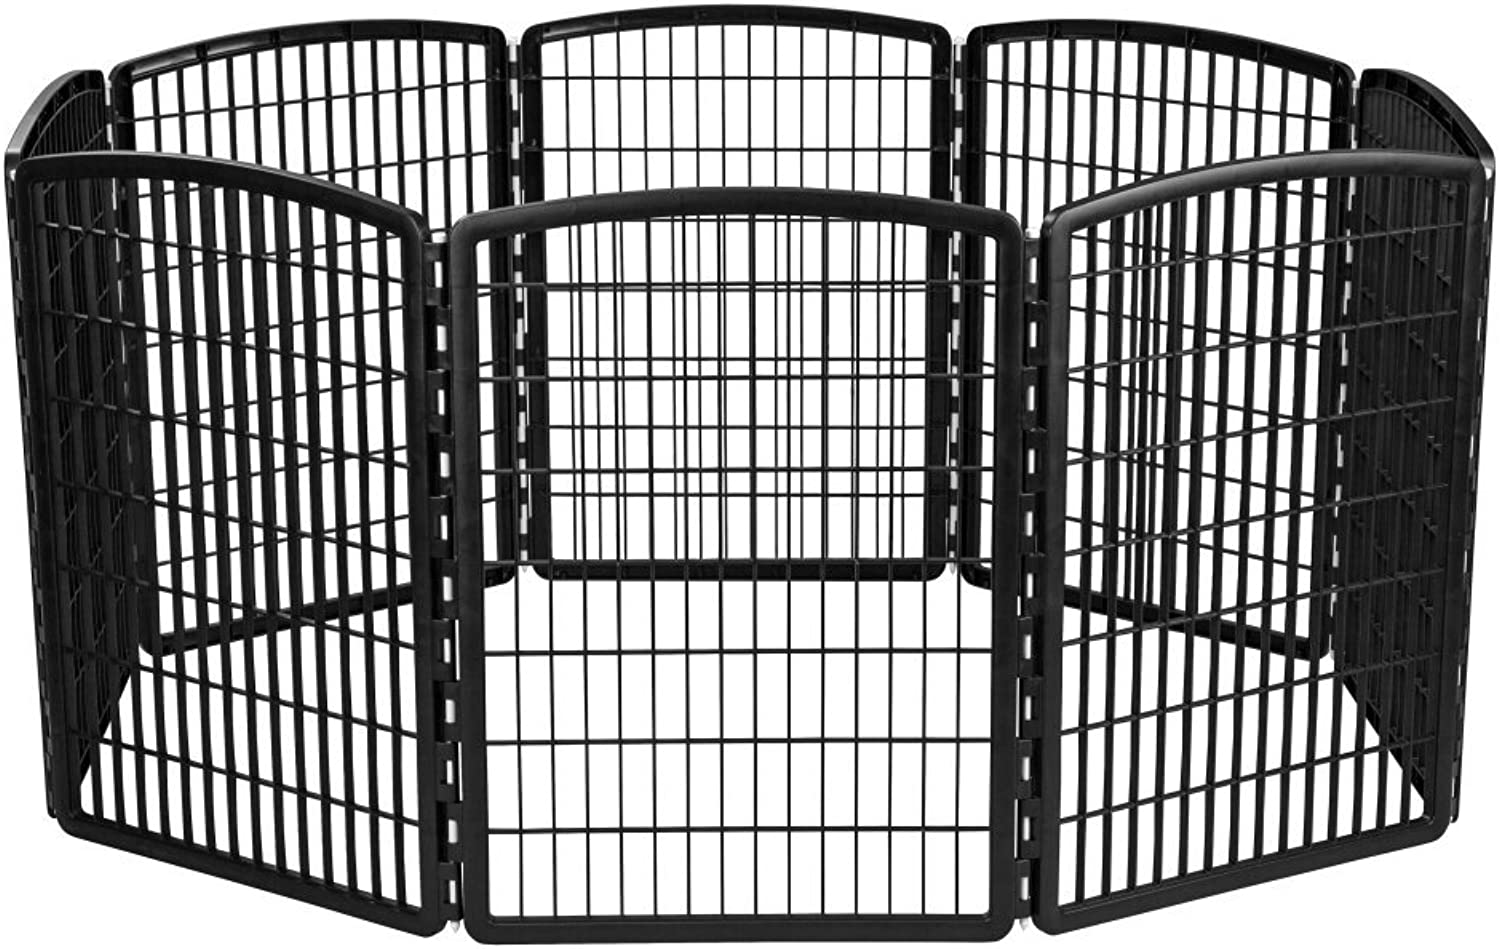 IRIS 34'' Exercise 8Panel Pet Playpen without Door, Black